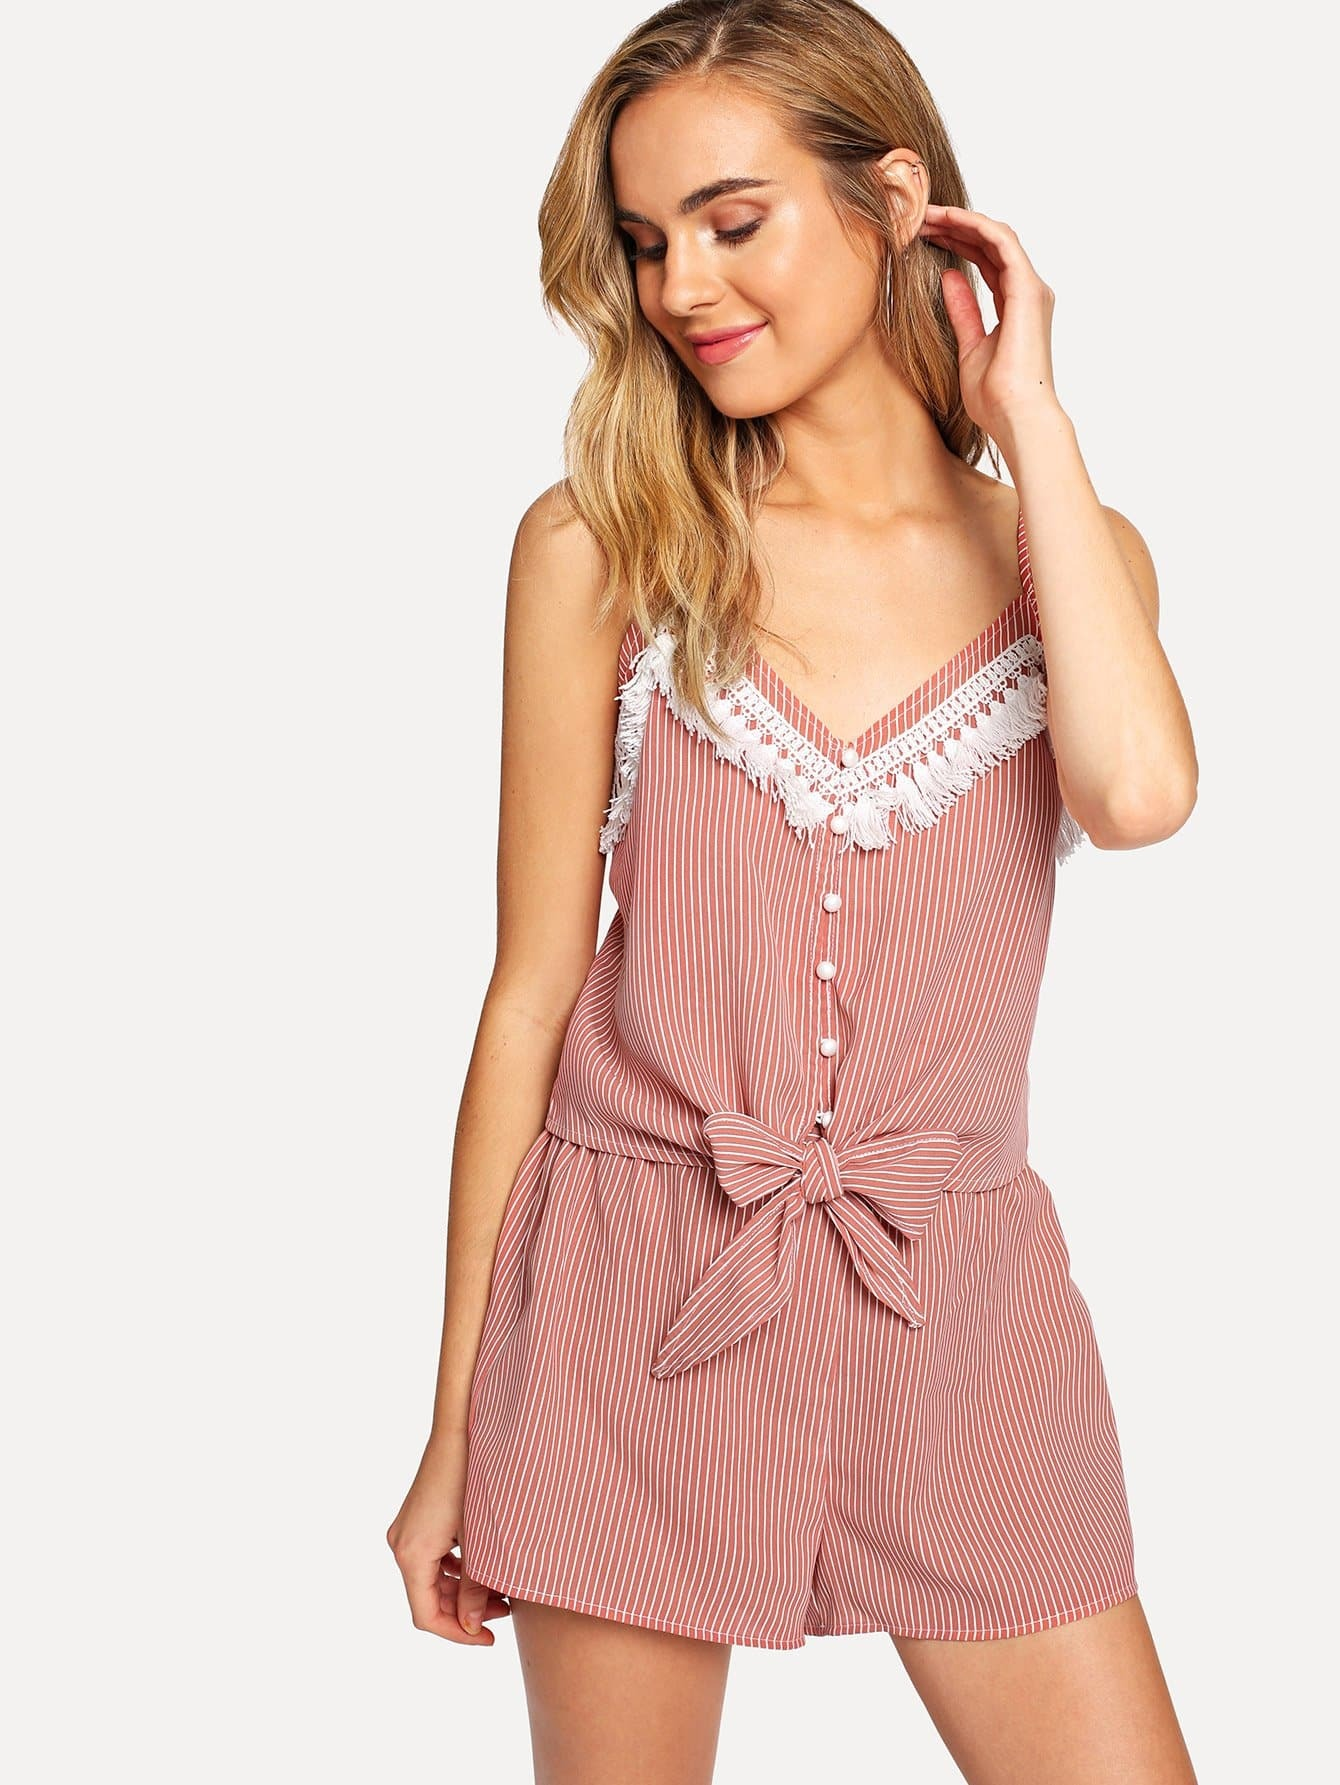 Tassel Trim Button Up Cami Top & Shorts Co-Ord trendy tassel trim pearl embellished cami top for women